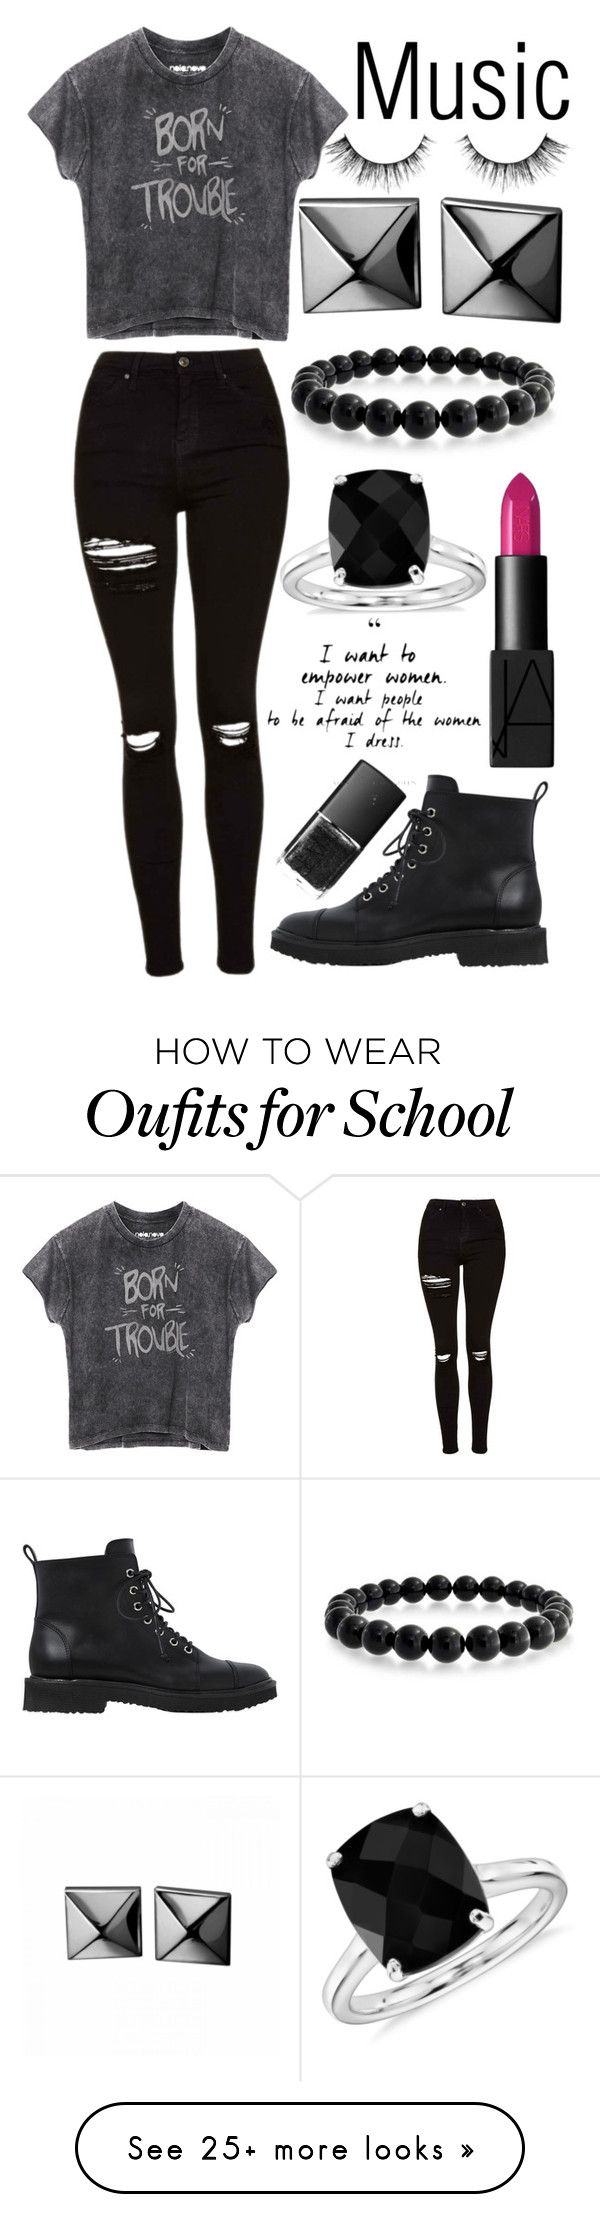 """School in 1 hour and 26 minutes!!!"" by muslc on Polyvore featuring Giuseppe Zanotti, Bling Jewelry, Topshop, NARS Cosmetics, Waterford and Blue Nile"